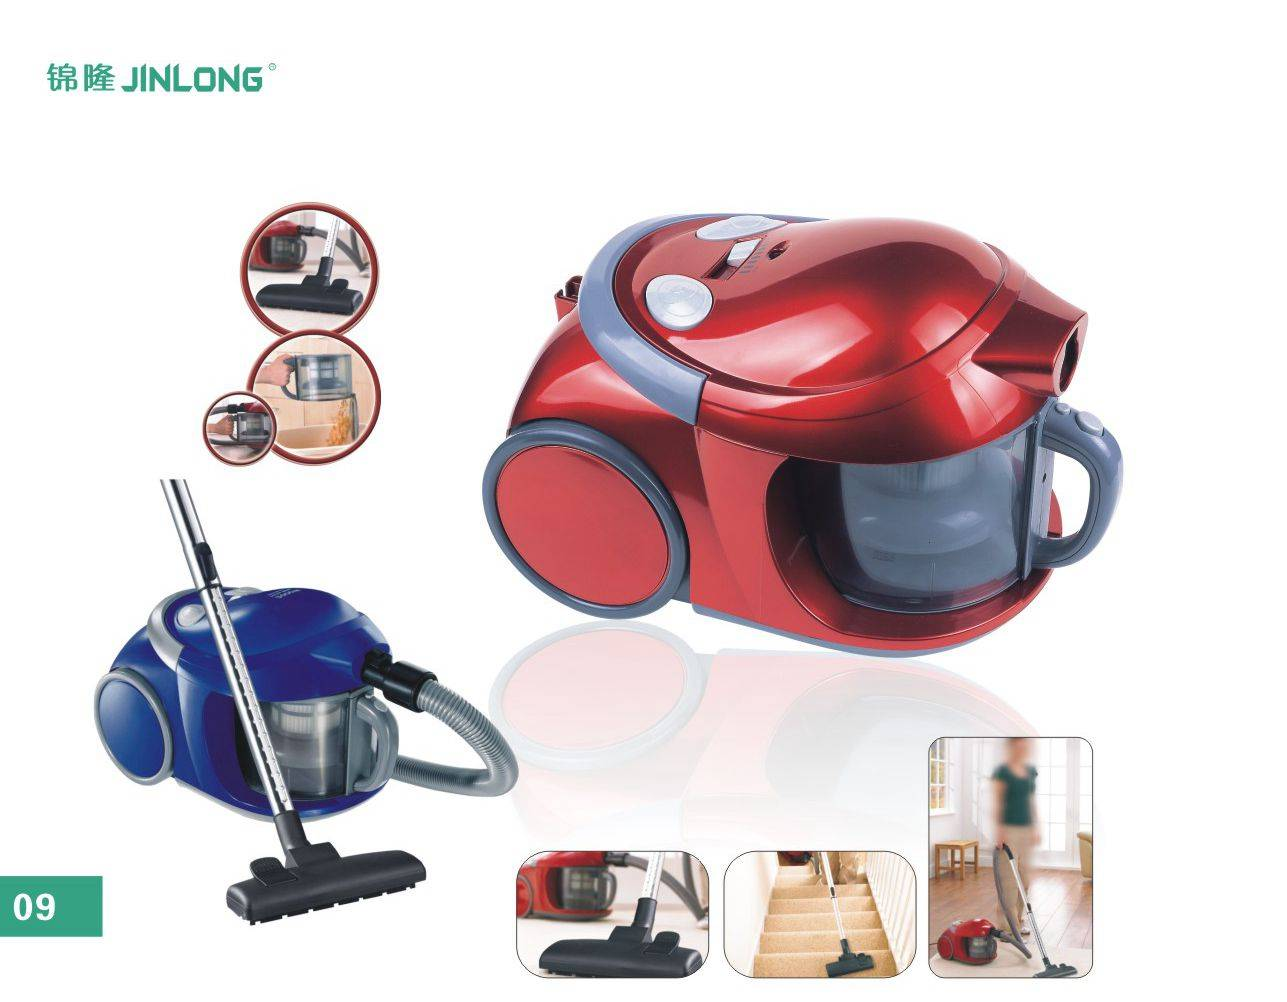 Cyclonic Cleaner DJL-902